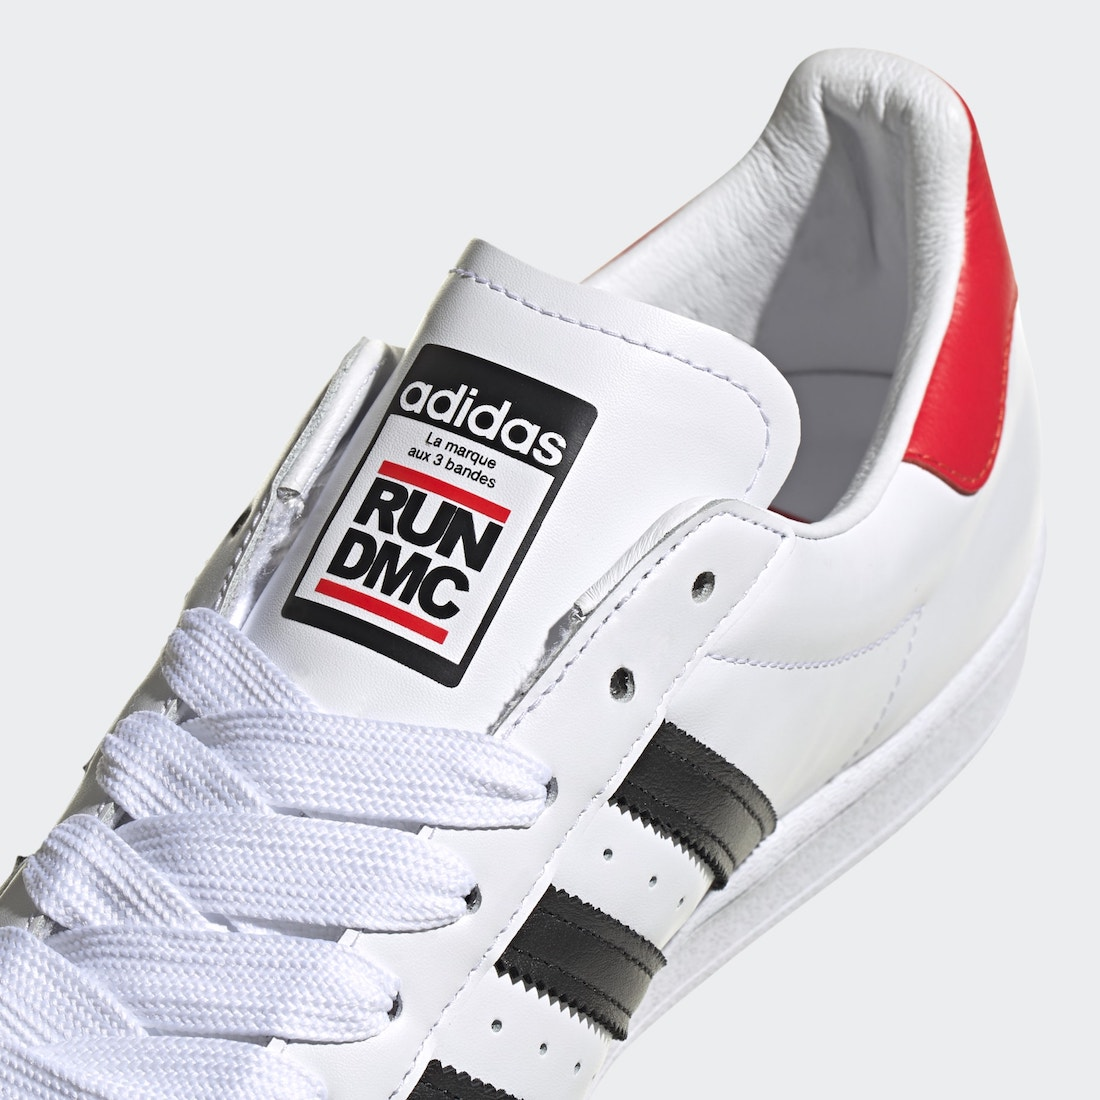 Run-DMC-adidas-Superstar-White-FX7616-Release-Date-5